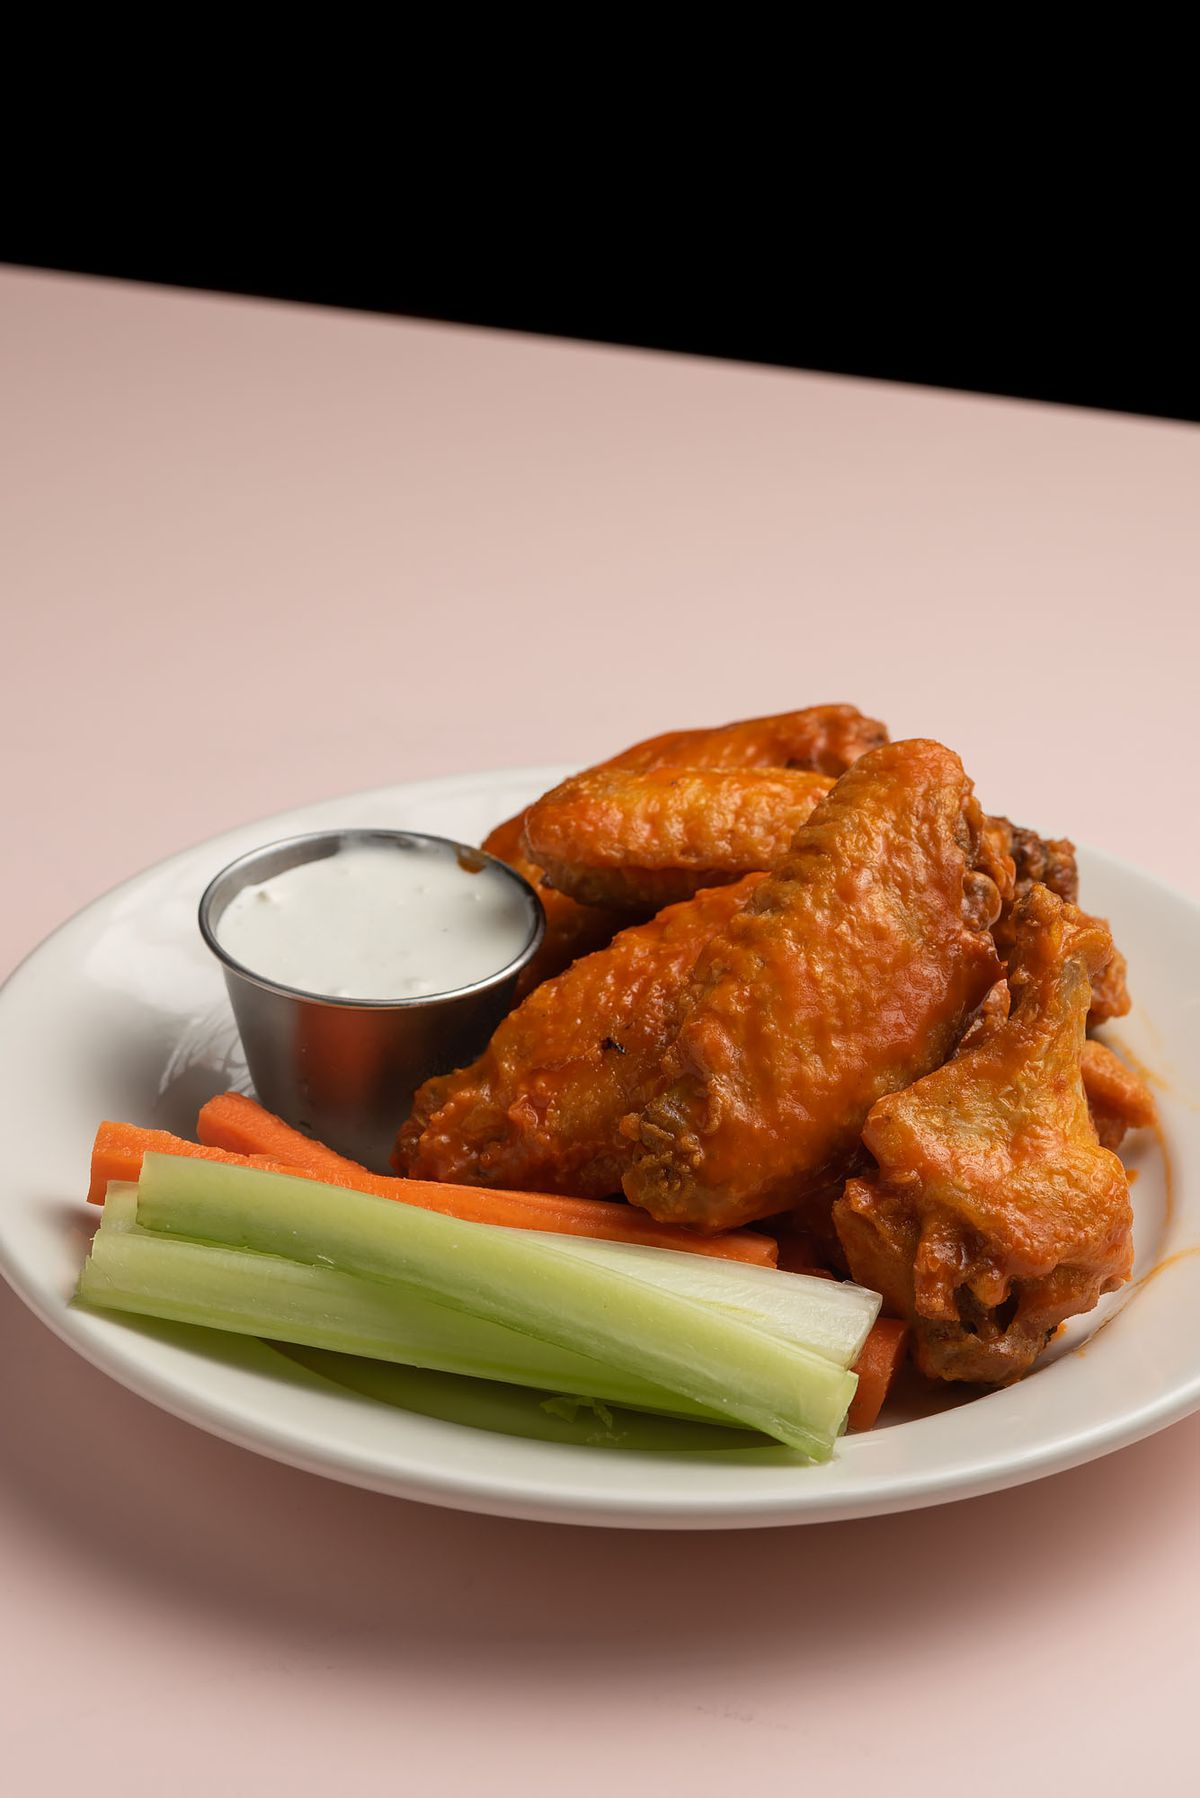 Chicken wings with vegetables on the side.